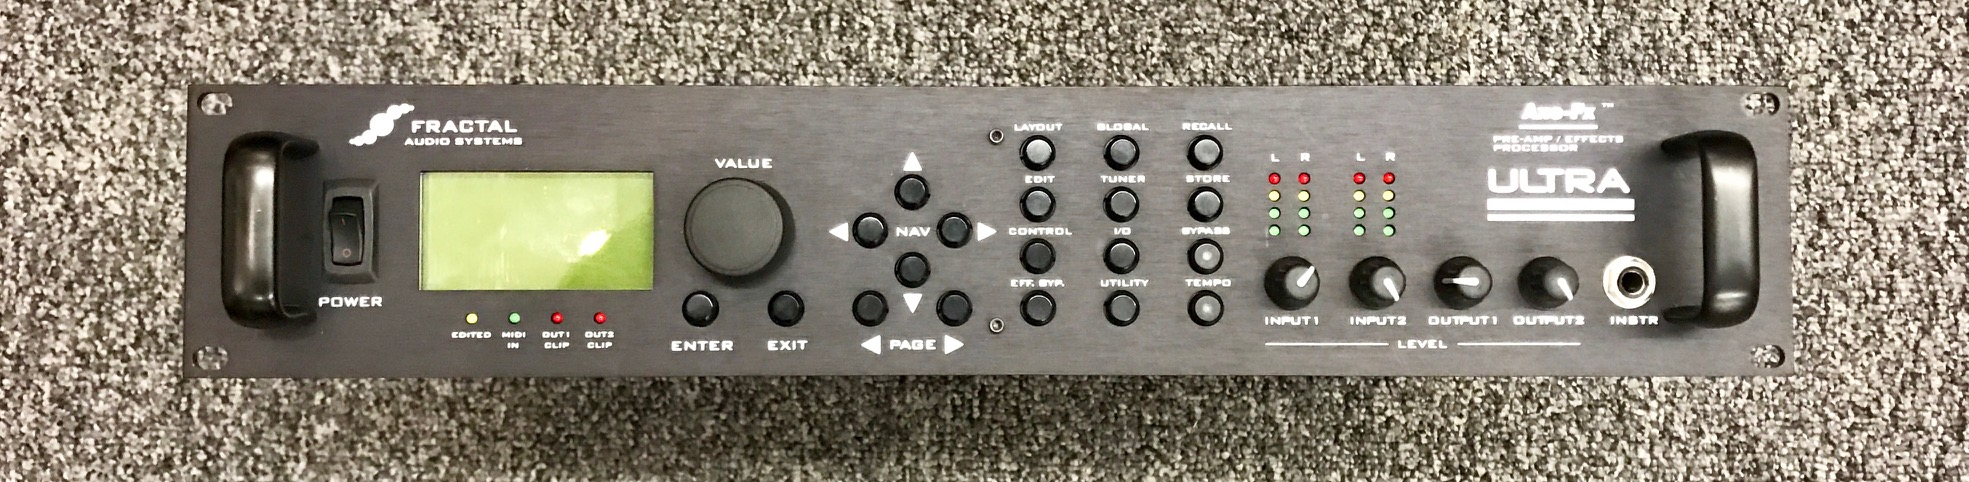 Fractal audio - Axe-Fx Ultra